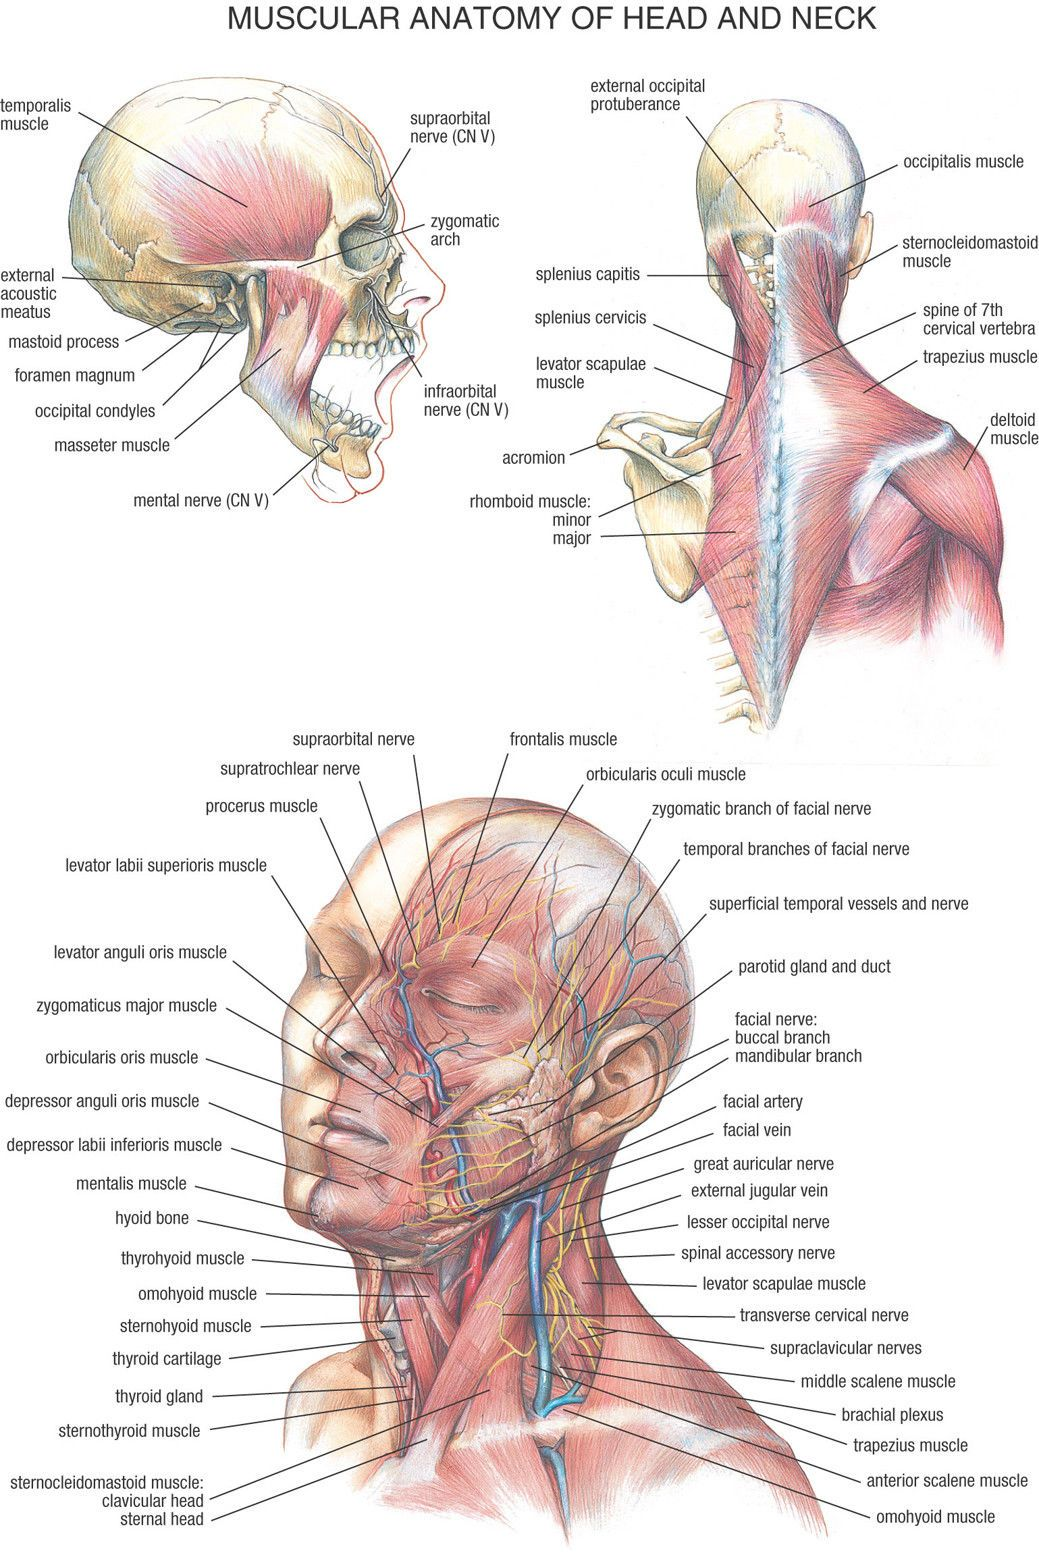 hight resolution of  4 99 human muscular anatomy of head and neck poster chart body midcal education ebay collectibles